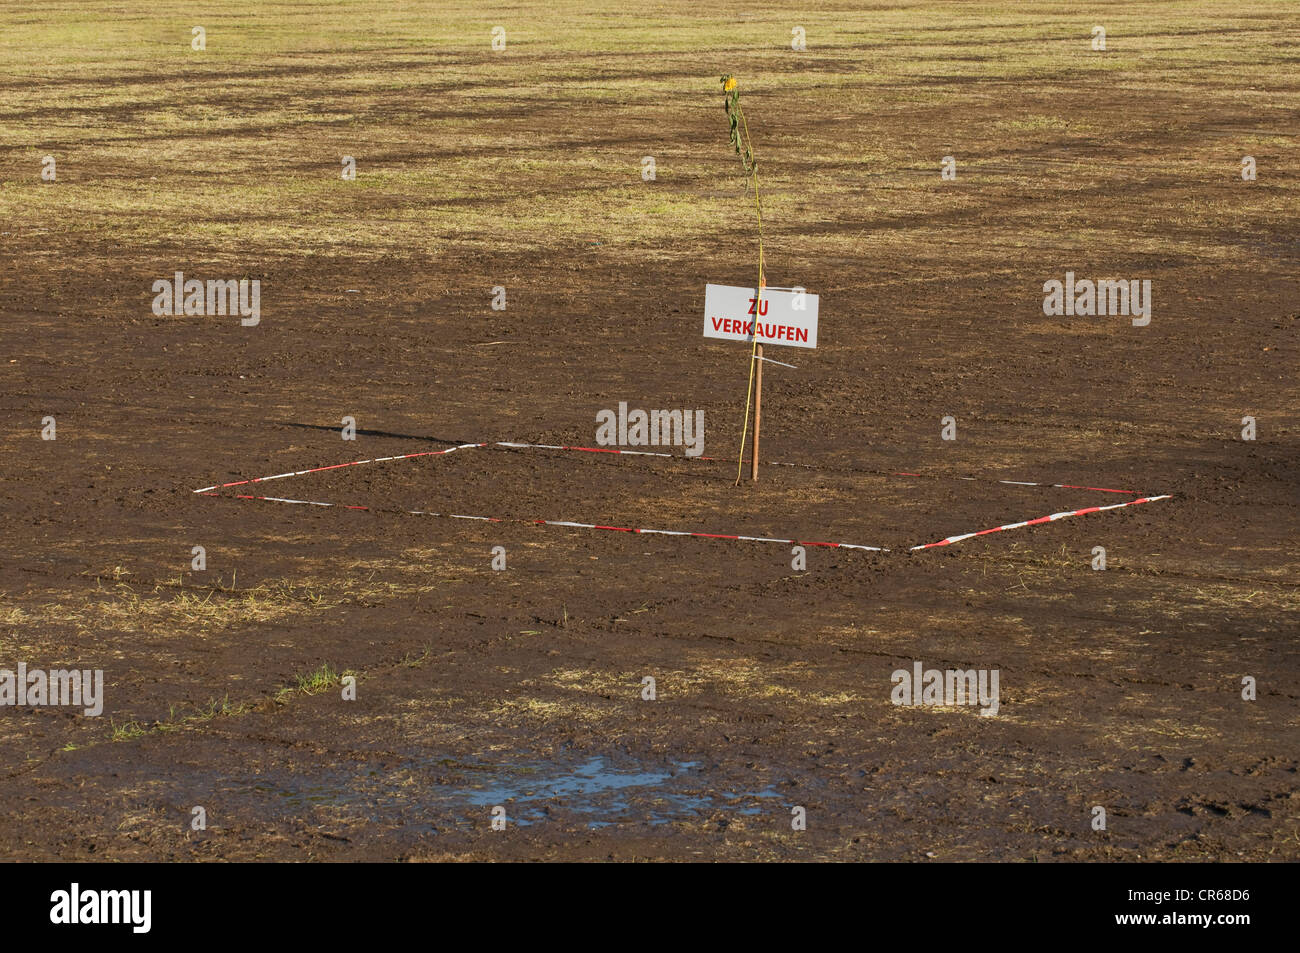 Plot of land with a Zu verkaufen sign, German for For Sale, PublicGround - Stock Image